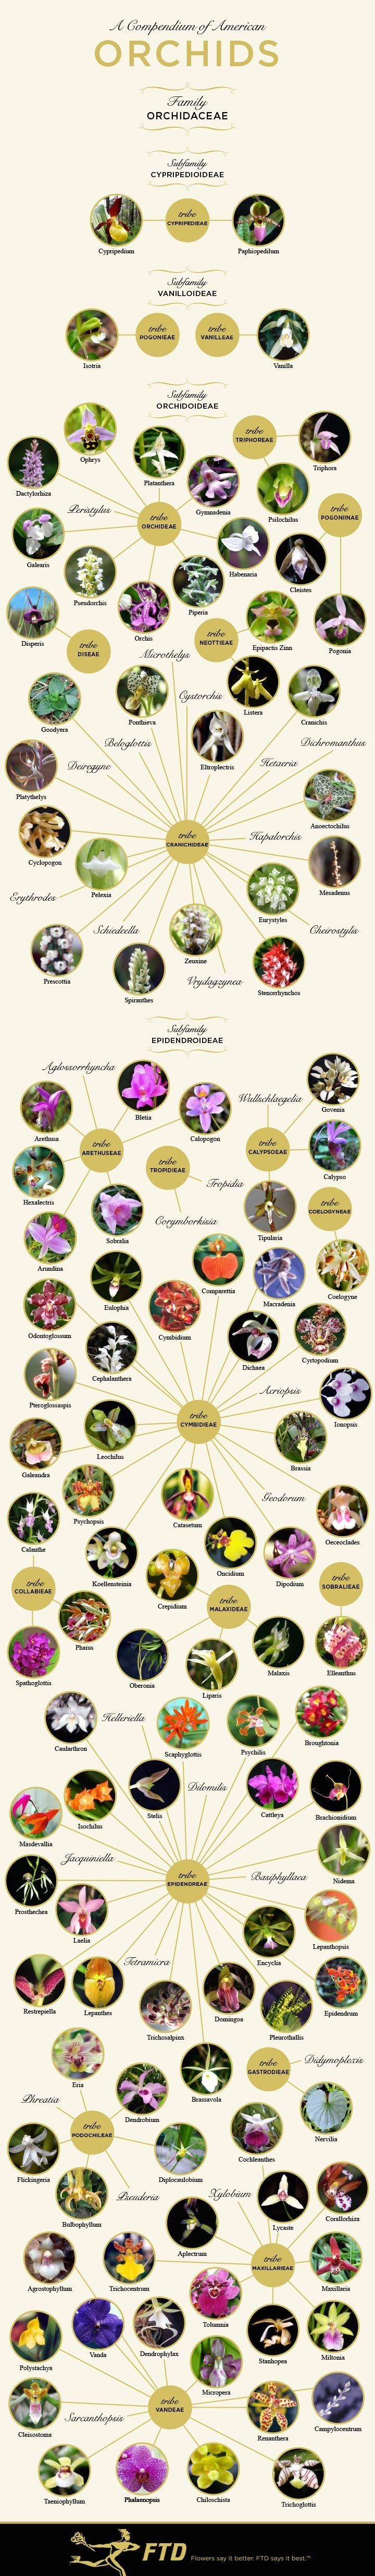 Types of Orchids: A Visual Compendium | 1000 in 2020 ...